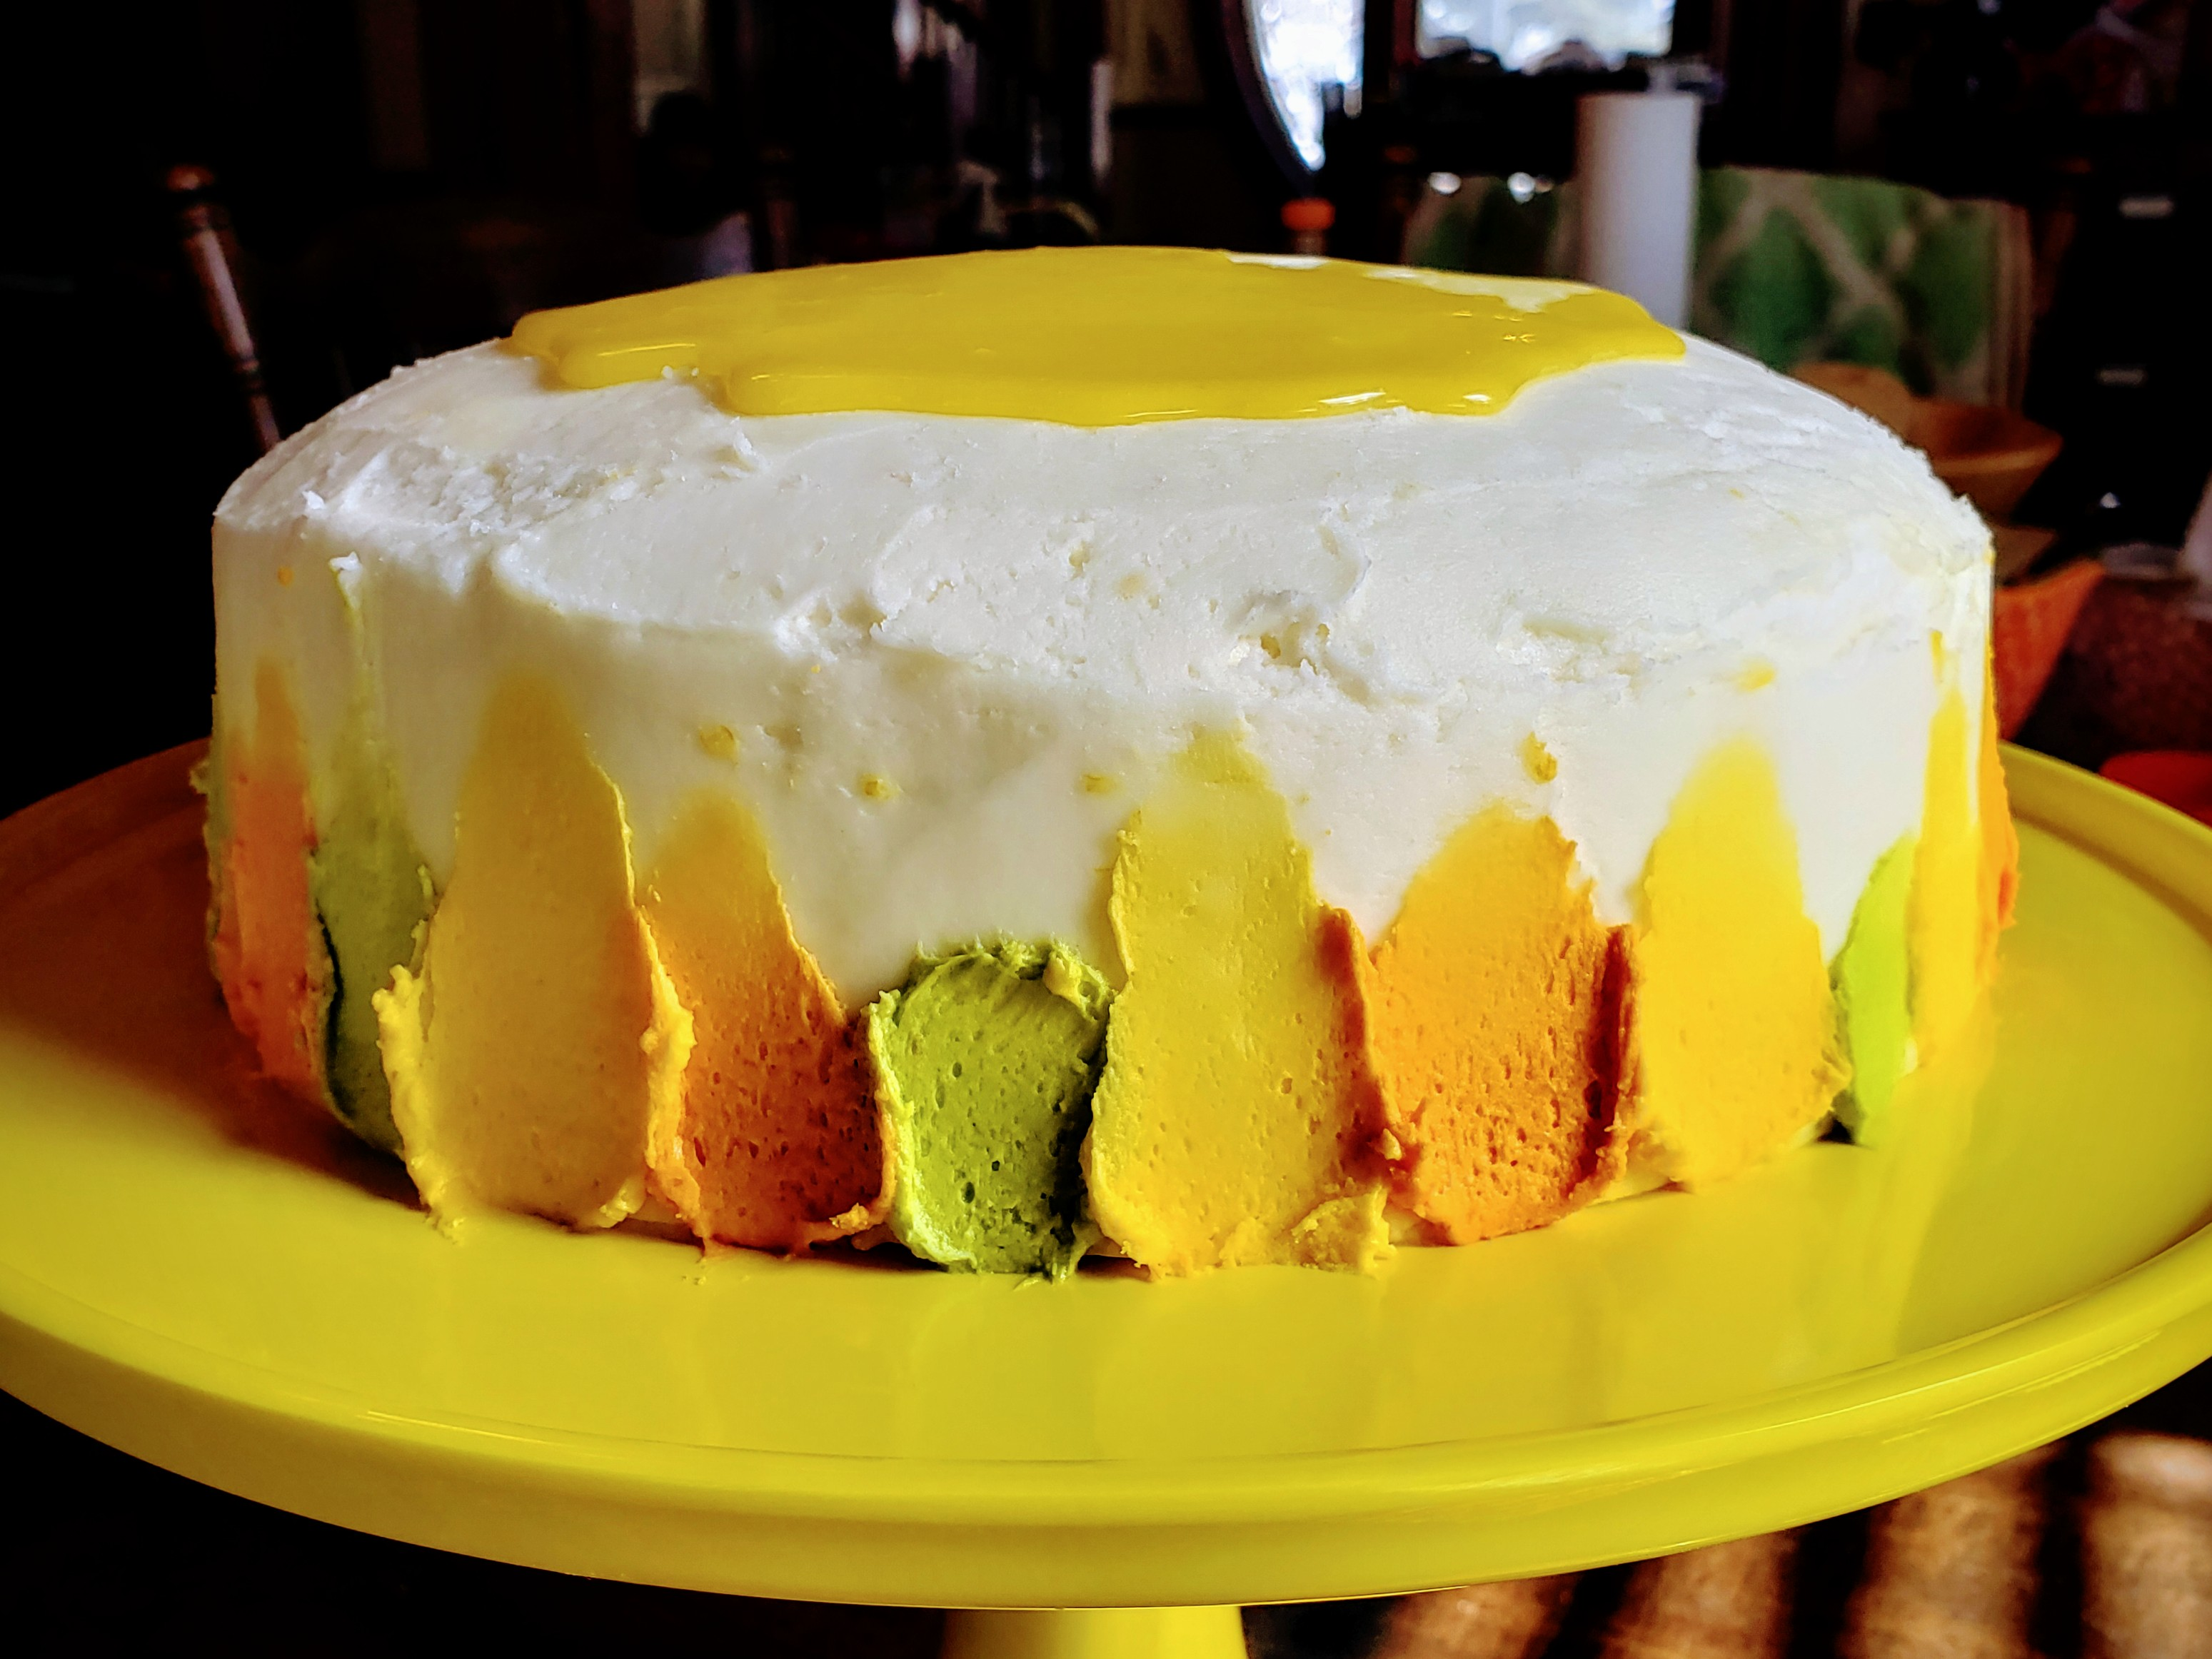 Lemon Cake with Lemon Filling and Lemon Butter Frosting